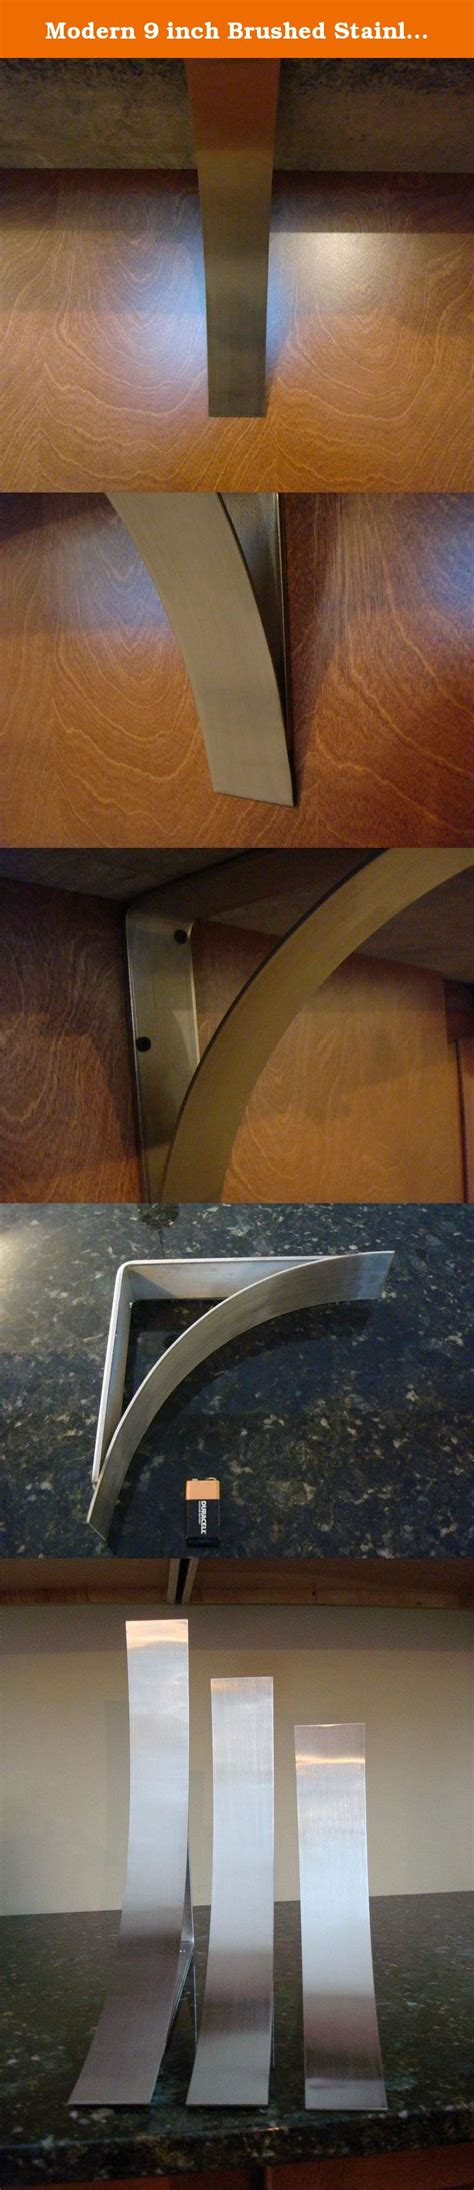 Modern Corbels For Granite Countertops by Modern 9 Inch Brushed Stainless Steel Counter Top Corbel